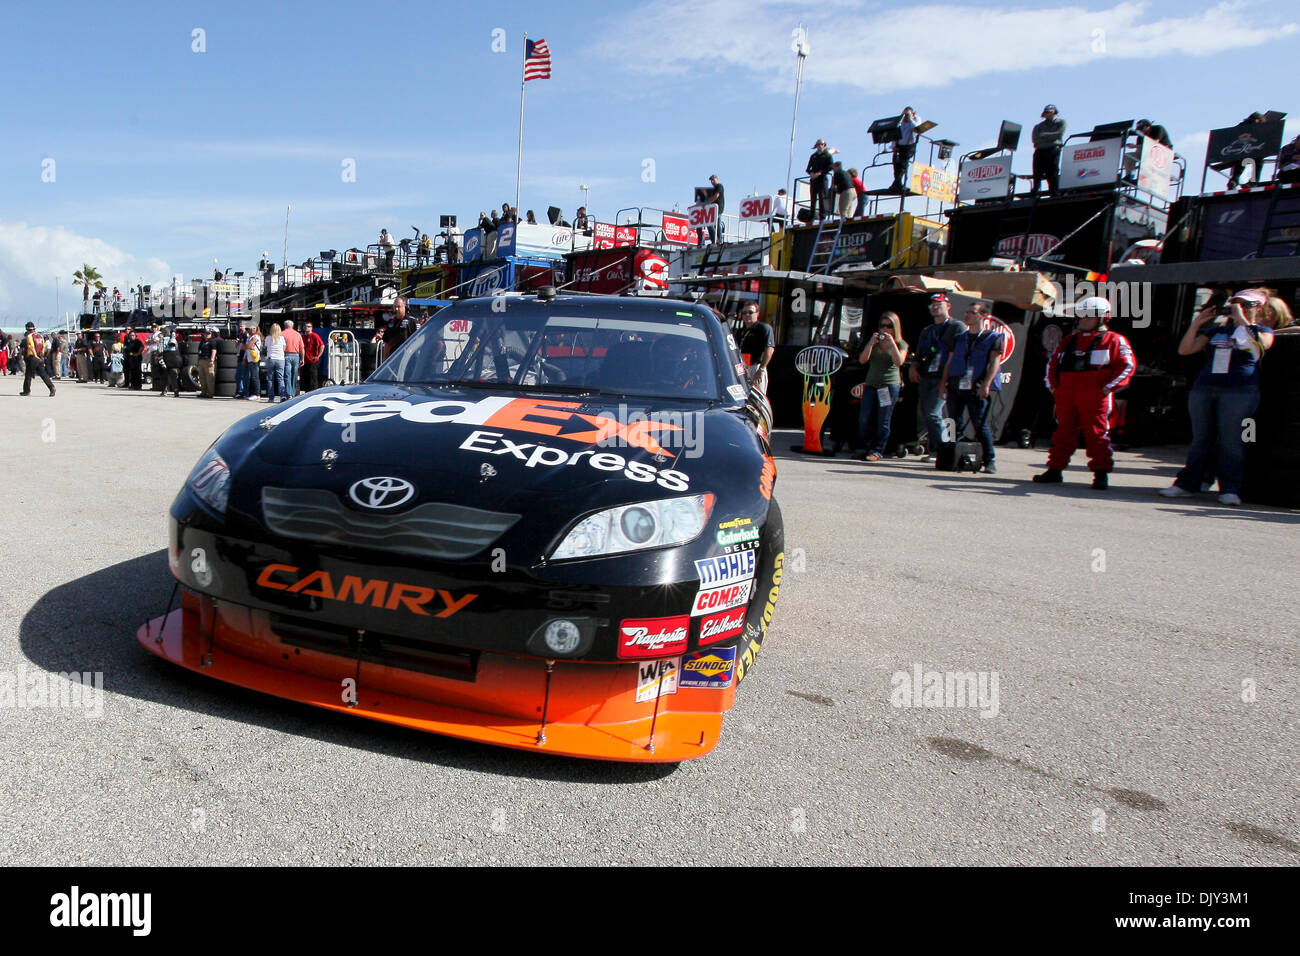 Nov. 20, 2010 - Homestead, Florida, United States of America - Denny Hamlin heady out of the pits to practice for the NASCAR Sprint Cup Series Ford 400 at Homestead Miami Speedway in Homestead, Florida. (Credit Image: © Ben Hicks/Southcreek Global/ZUMAPRESS.com) - Stock Image